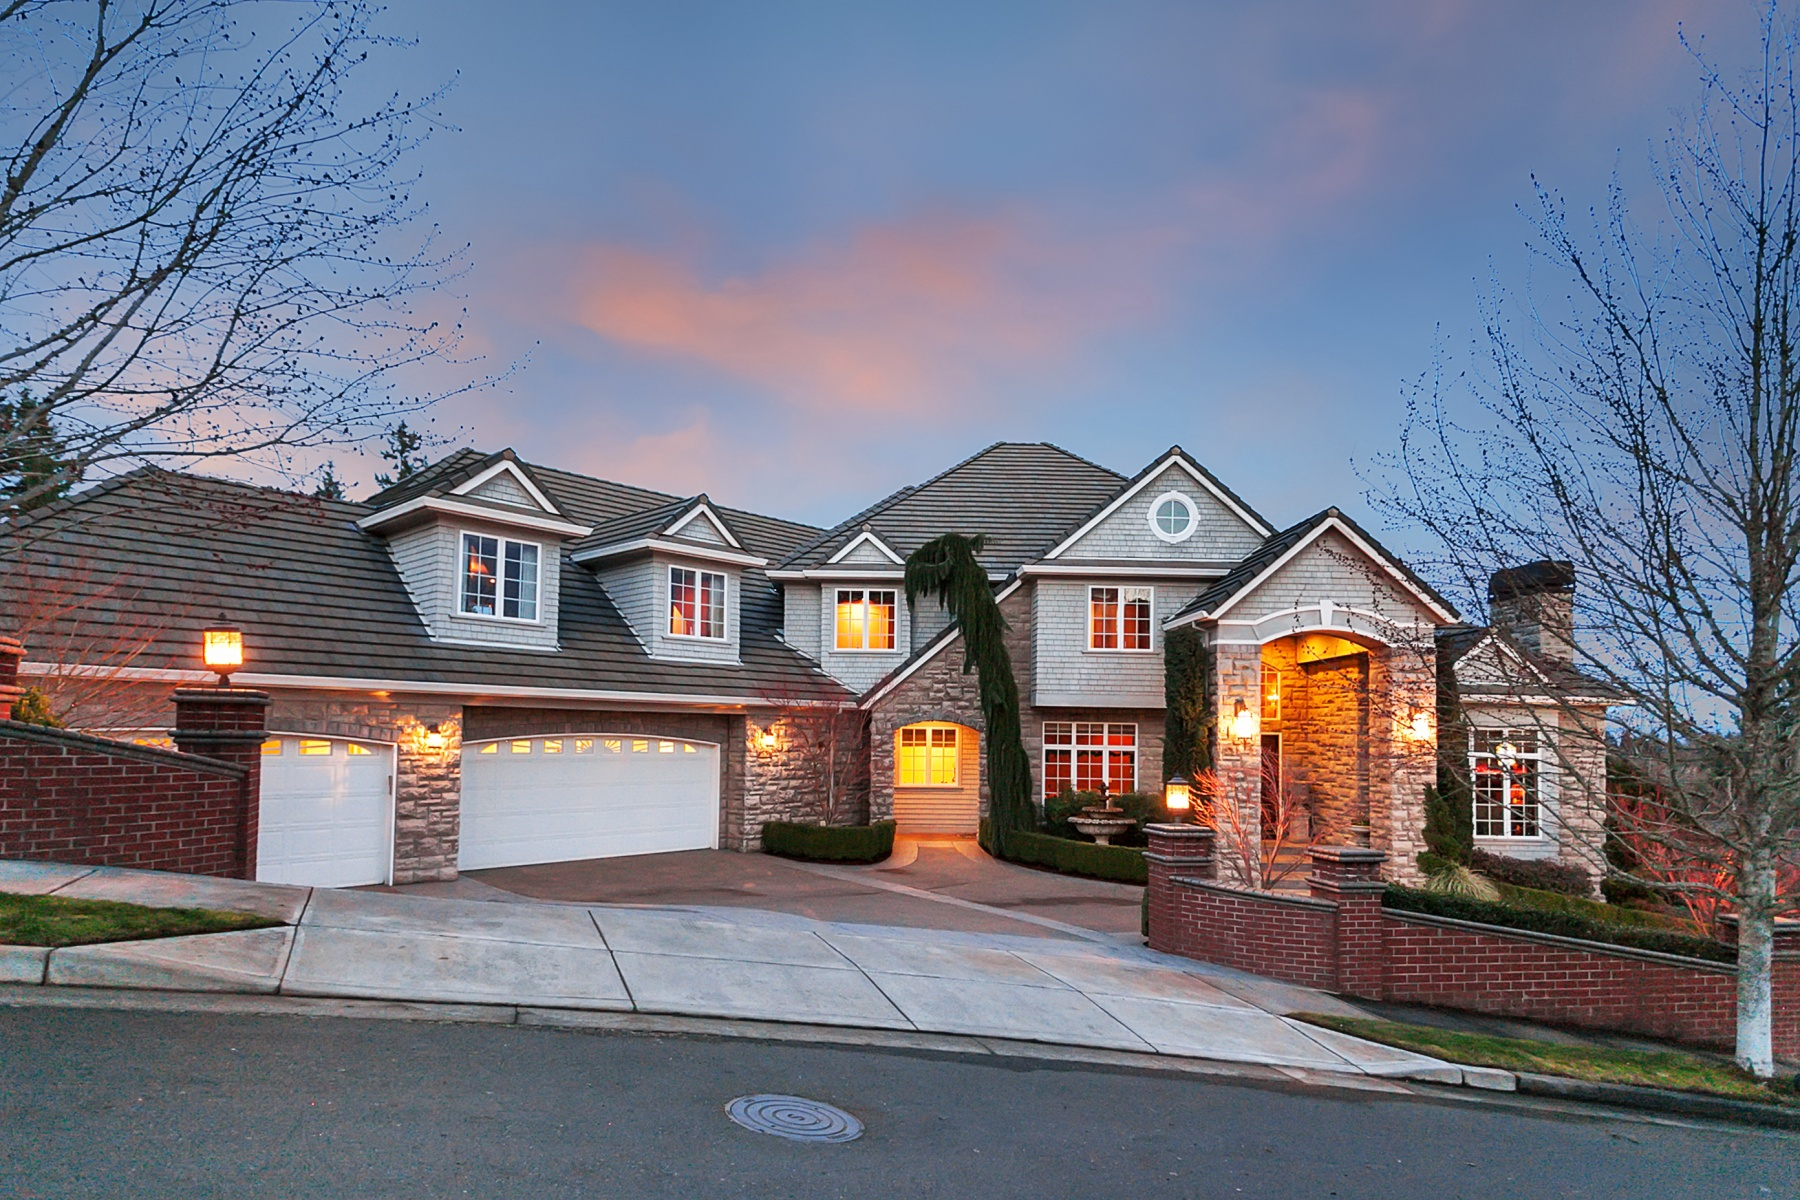 Single Family Home for Sale at 2550 LORINDA CT A, WEST LINN West Linn, Oregon 97068 United States